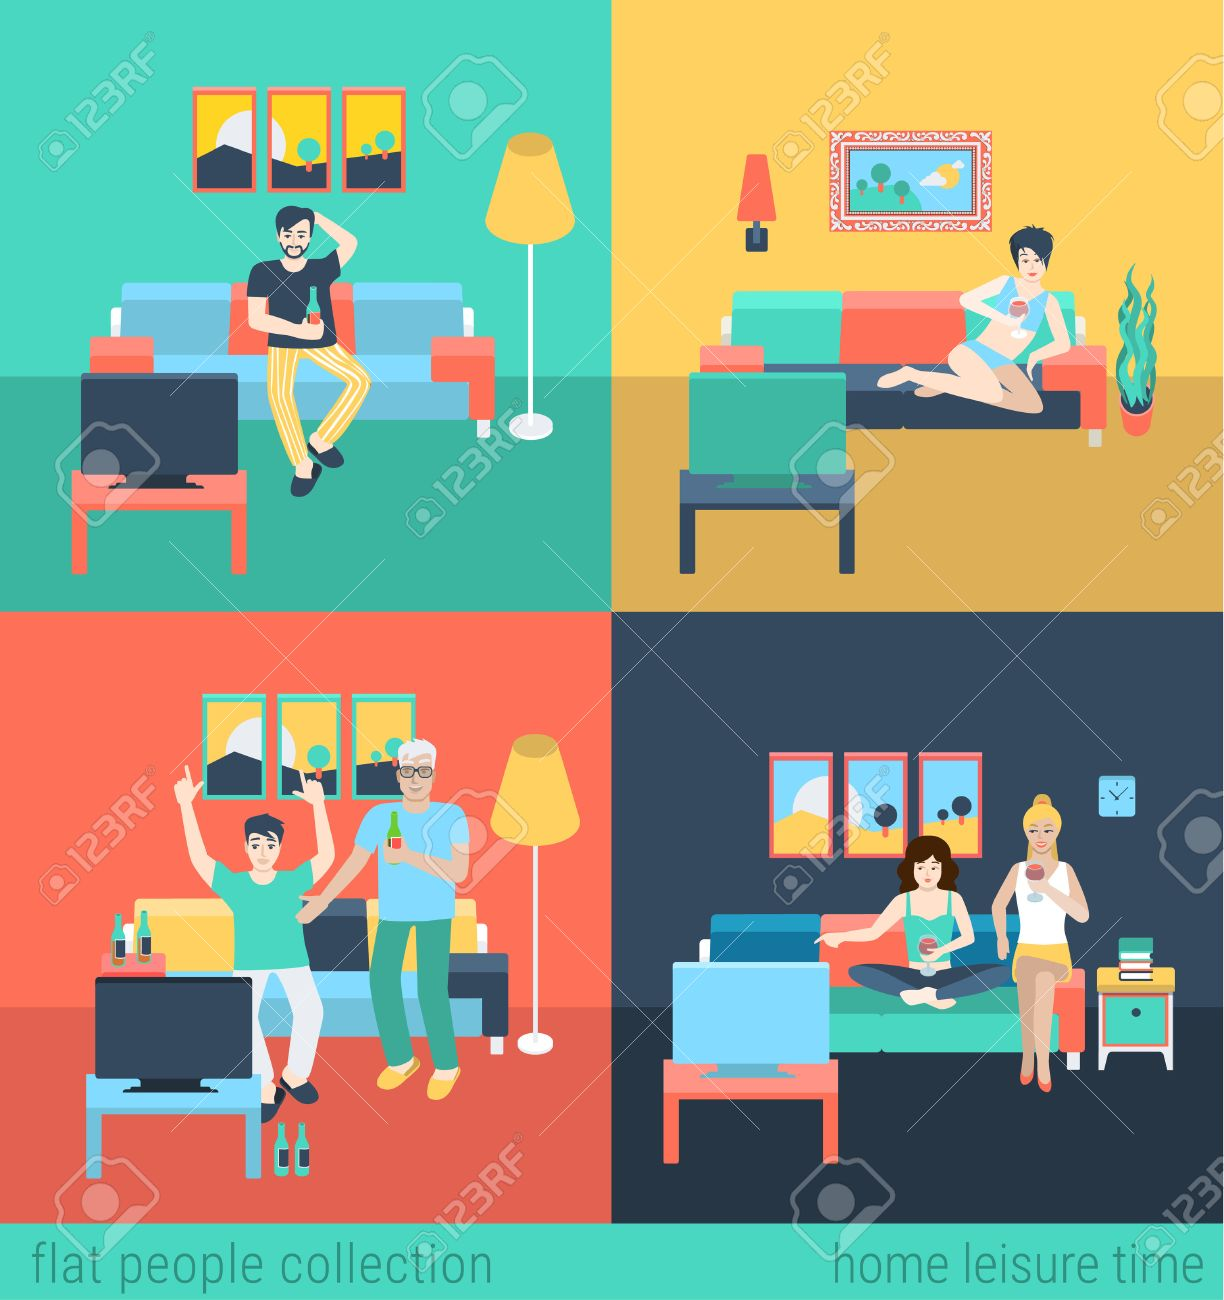 Set Of Friends Family In Living Room Watch TV Leisure Flat People Lifestyle Situation